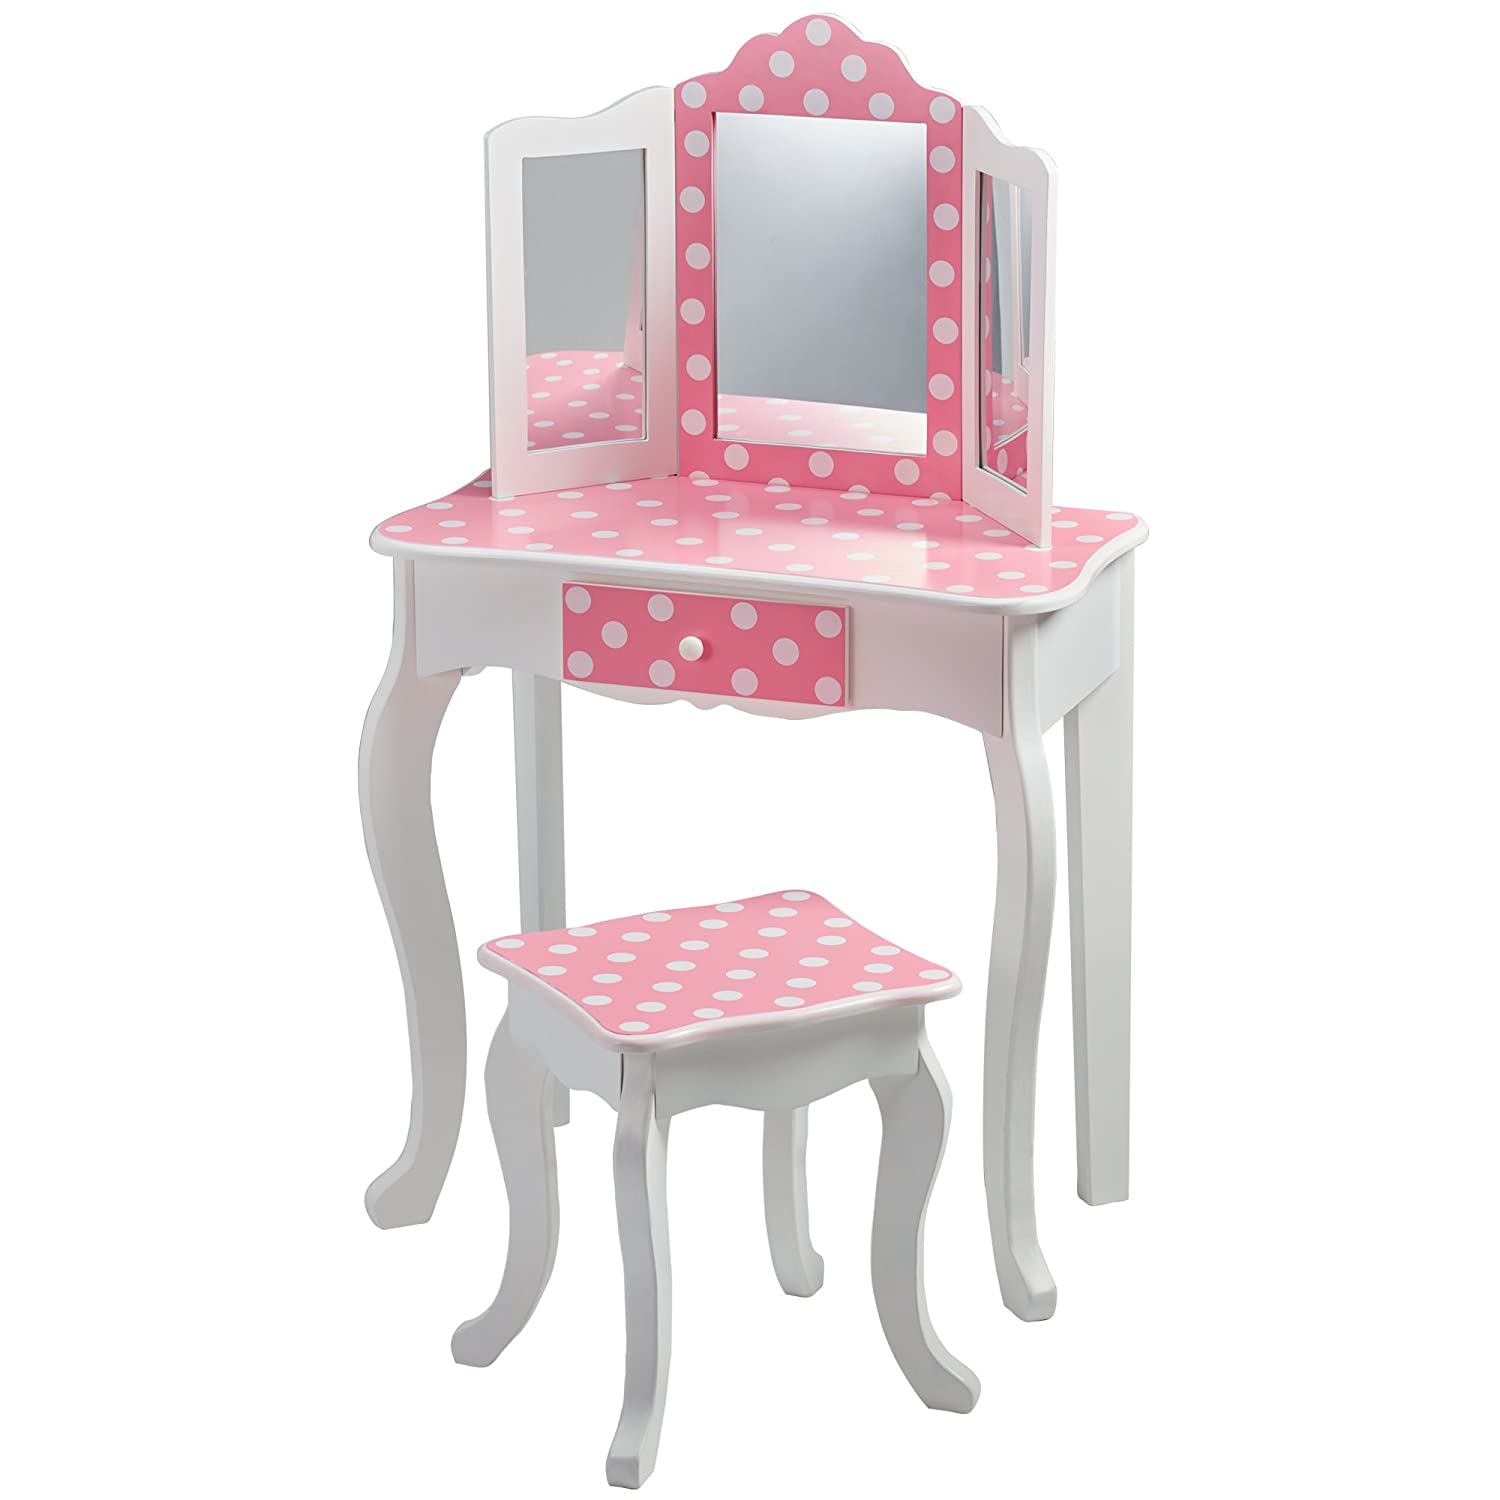 Fashion Prints TD-11670F Teamson Kids - Gravures de mode Polka Dot Vanity Table et Tabouret Bois Rose-Blanc 59 -69 x